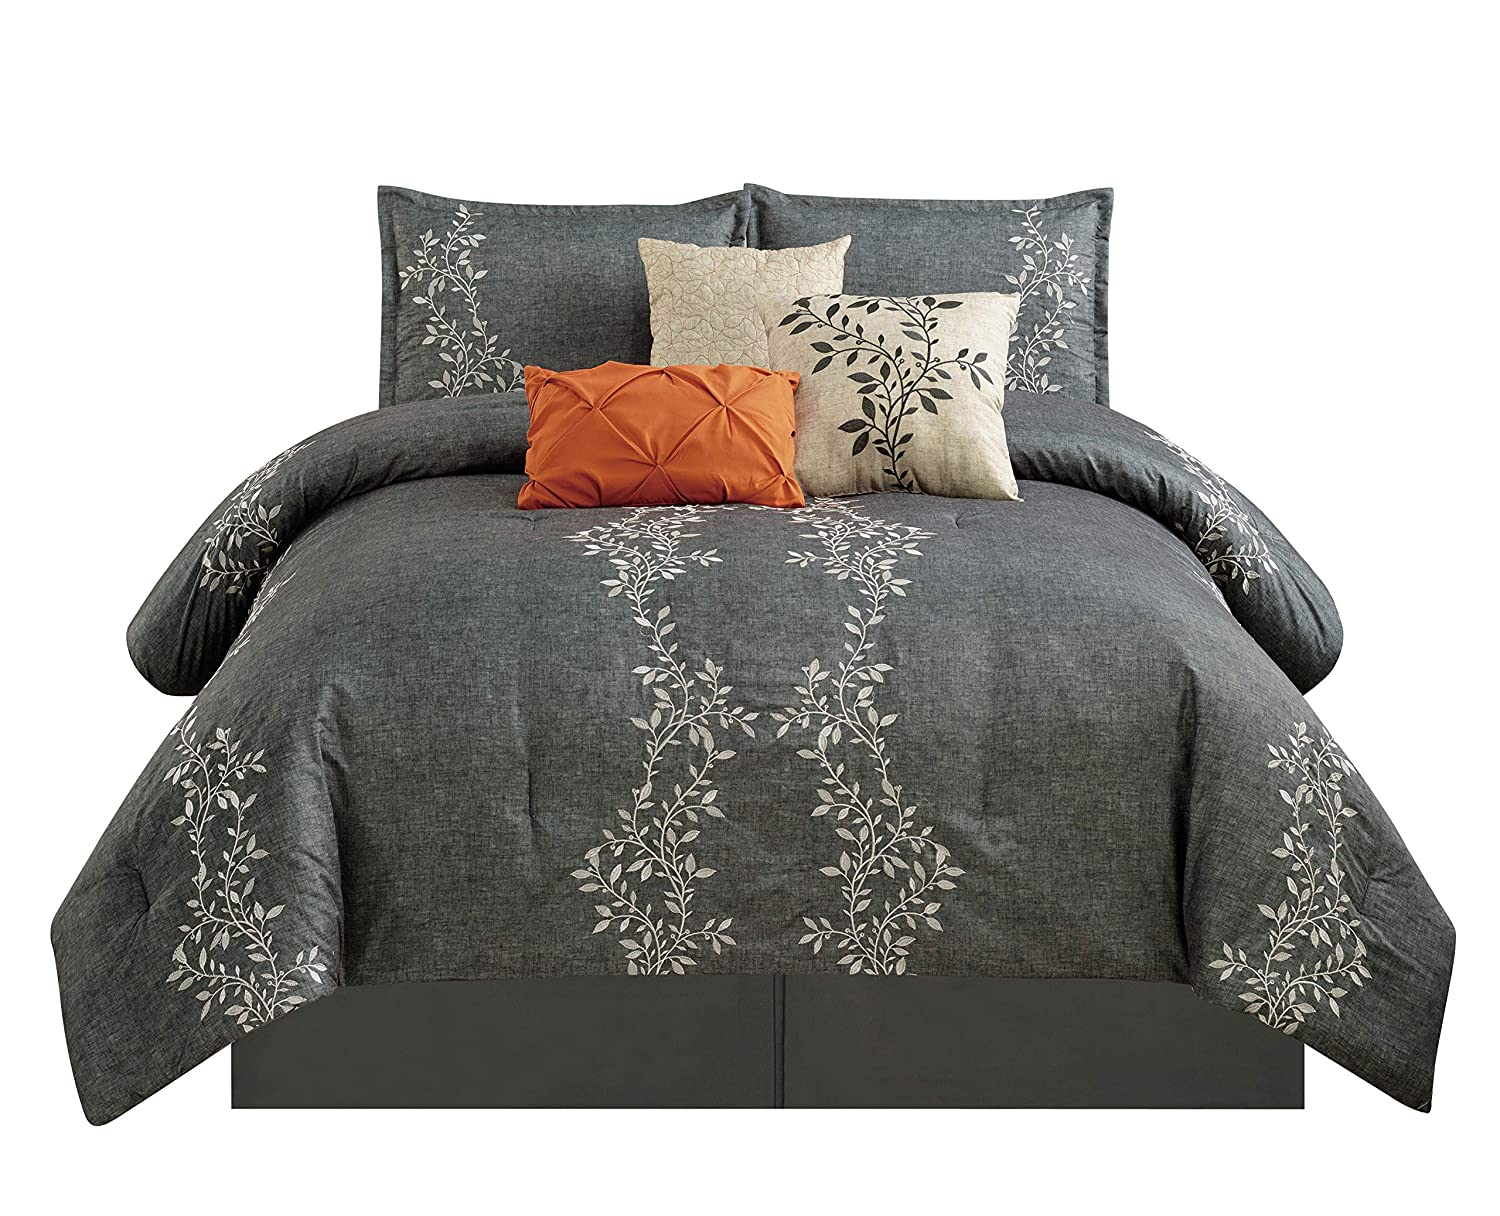 3d76a940ca Amazon.com: Chezmoi Collection Leafton 7 Pieces Leaves Tree Branches  Embroidery Design Charcoal/Gray Bedding Comforter Set (Queen): Home &  Kitchen